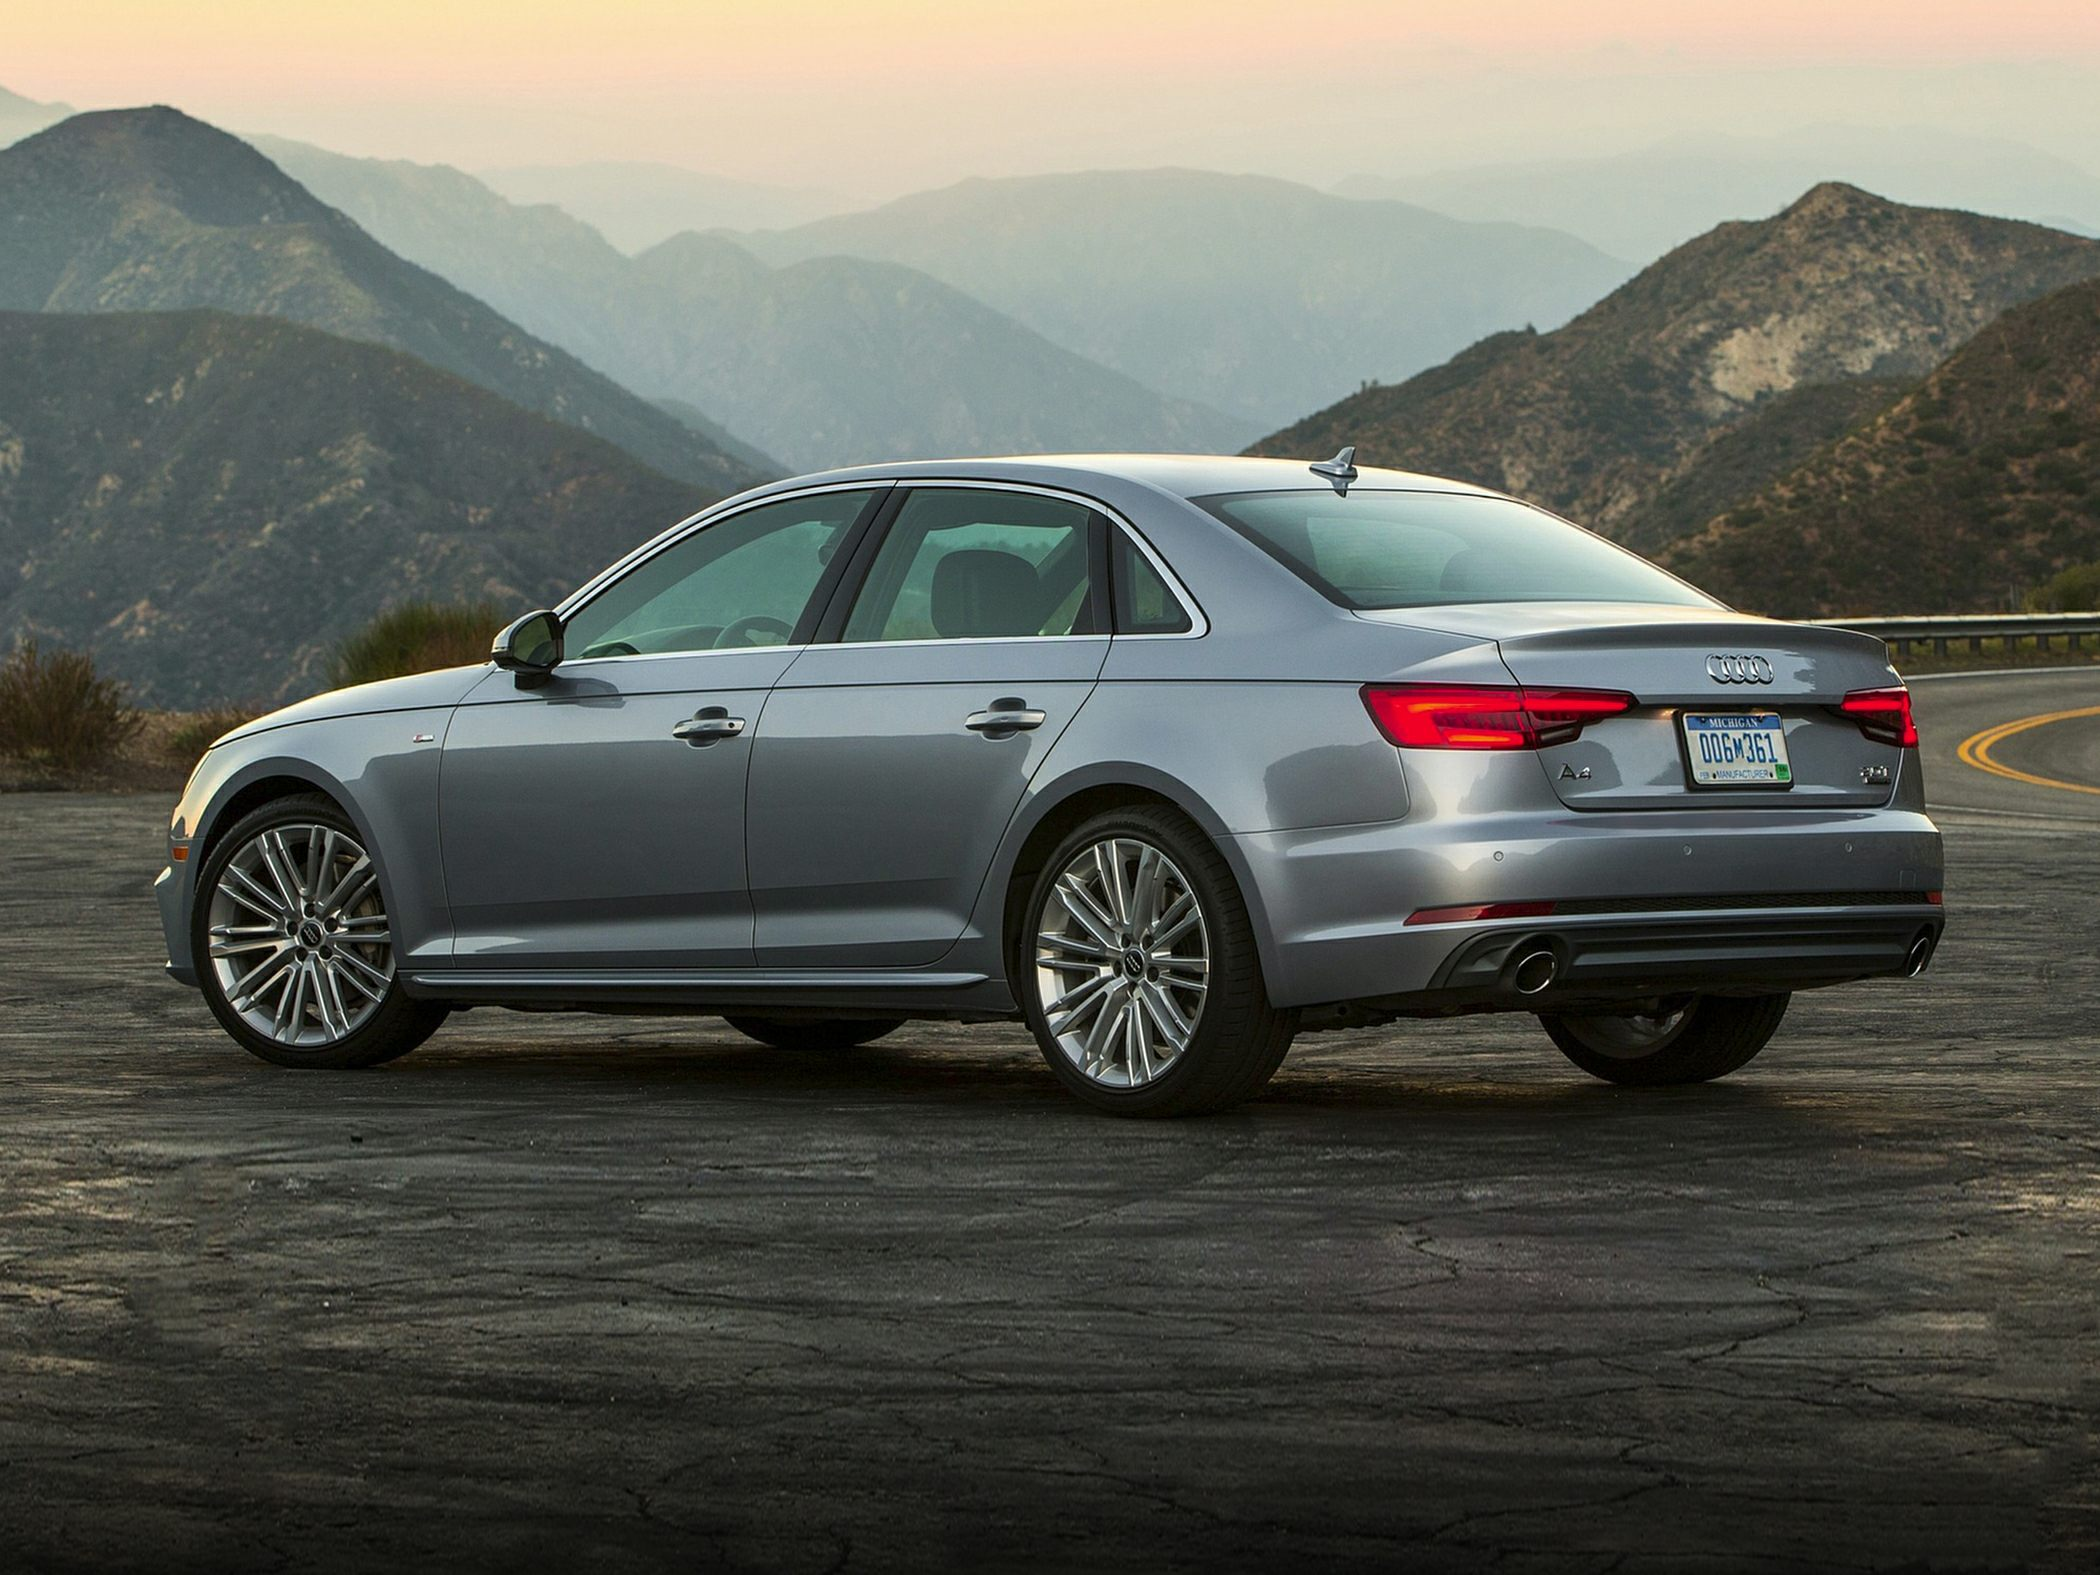 2018 Audi A4 Exterior Colors 2018 Cars Models